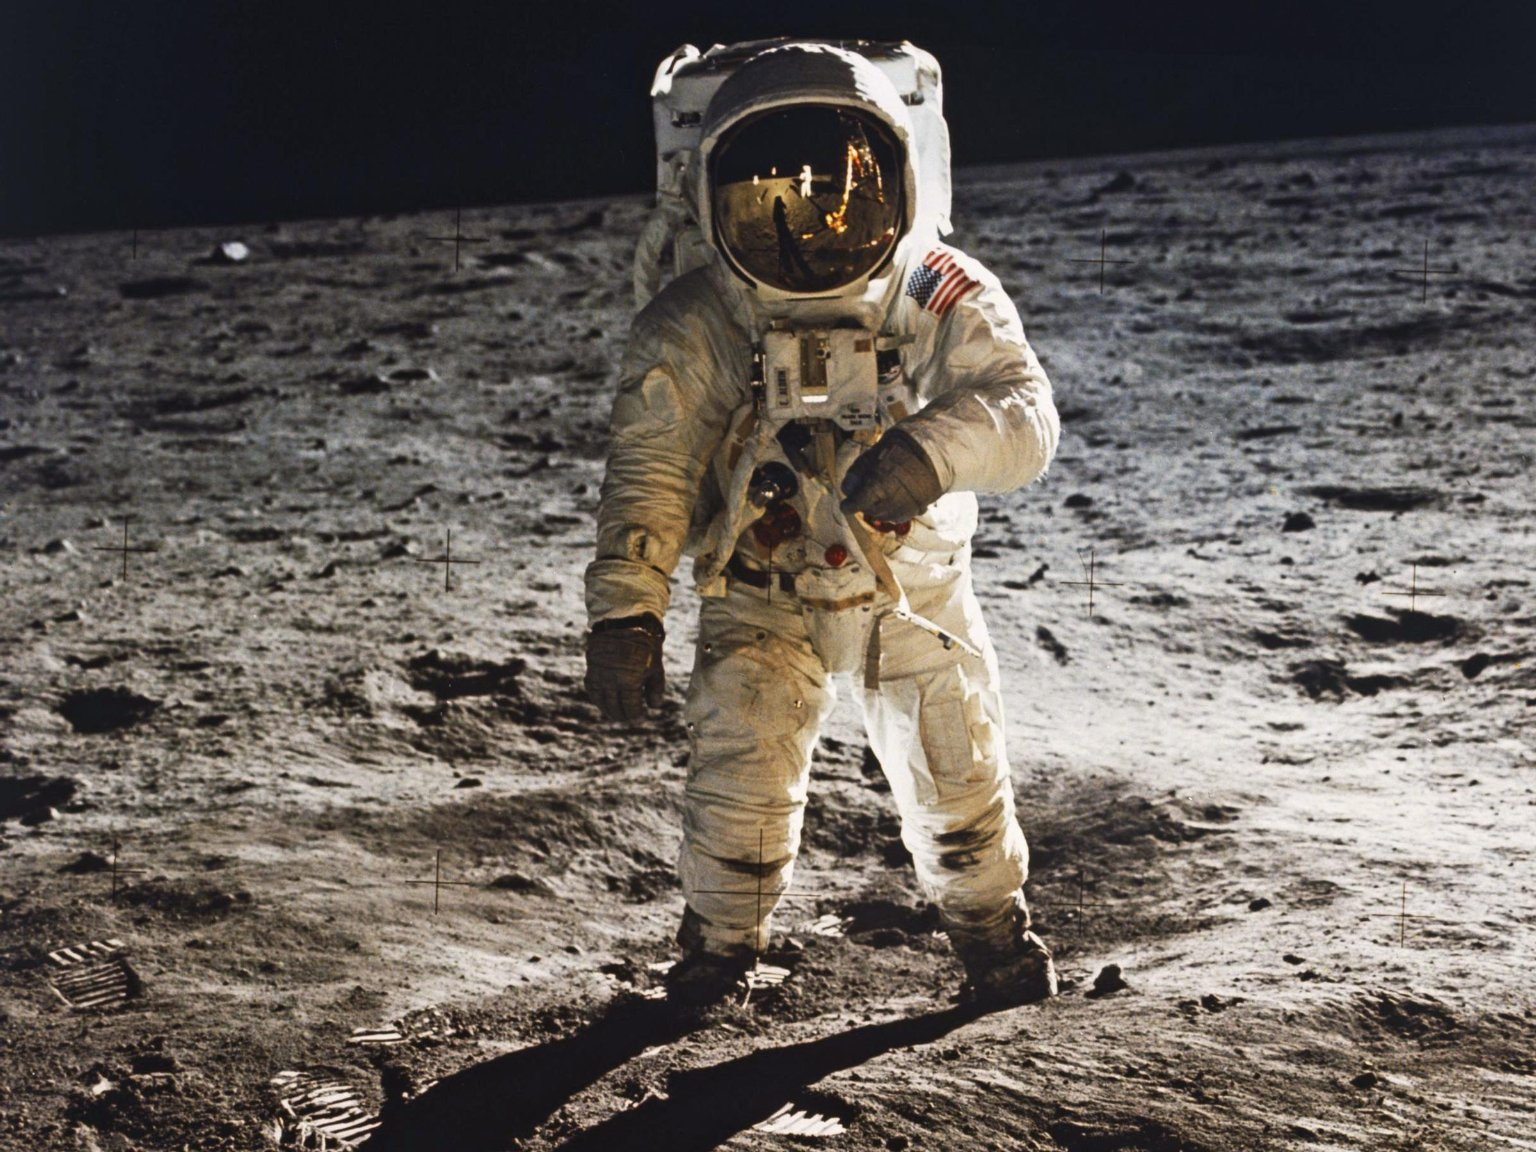 Moon Landing Hoax Believers Follow Party Lines: Report